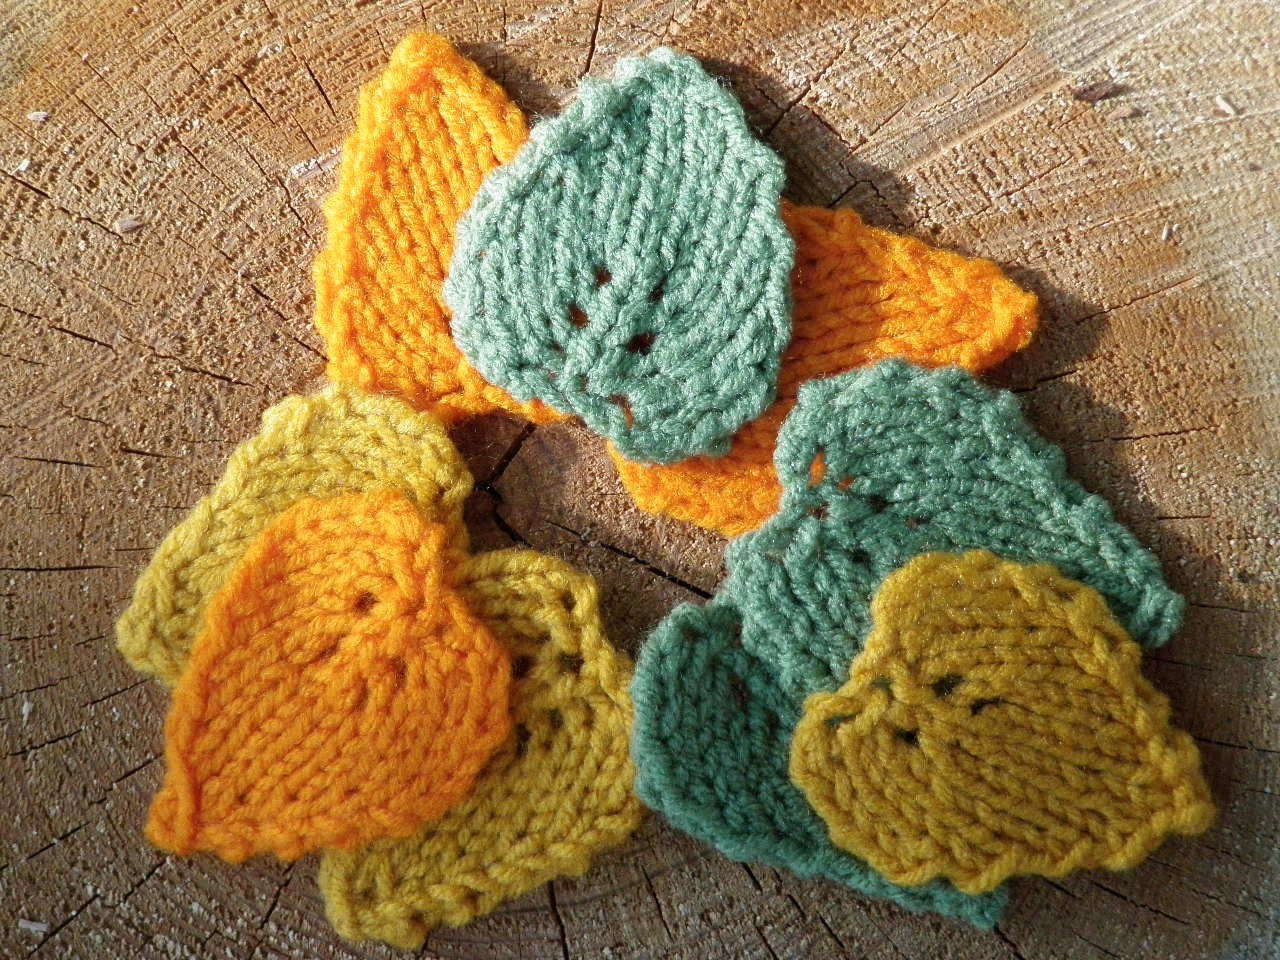 Knitted Leaves Patterns Free : Sale 9 Knitted Leaves in Fall Colors